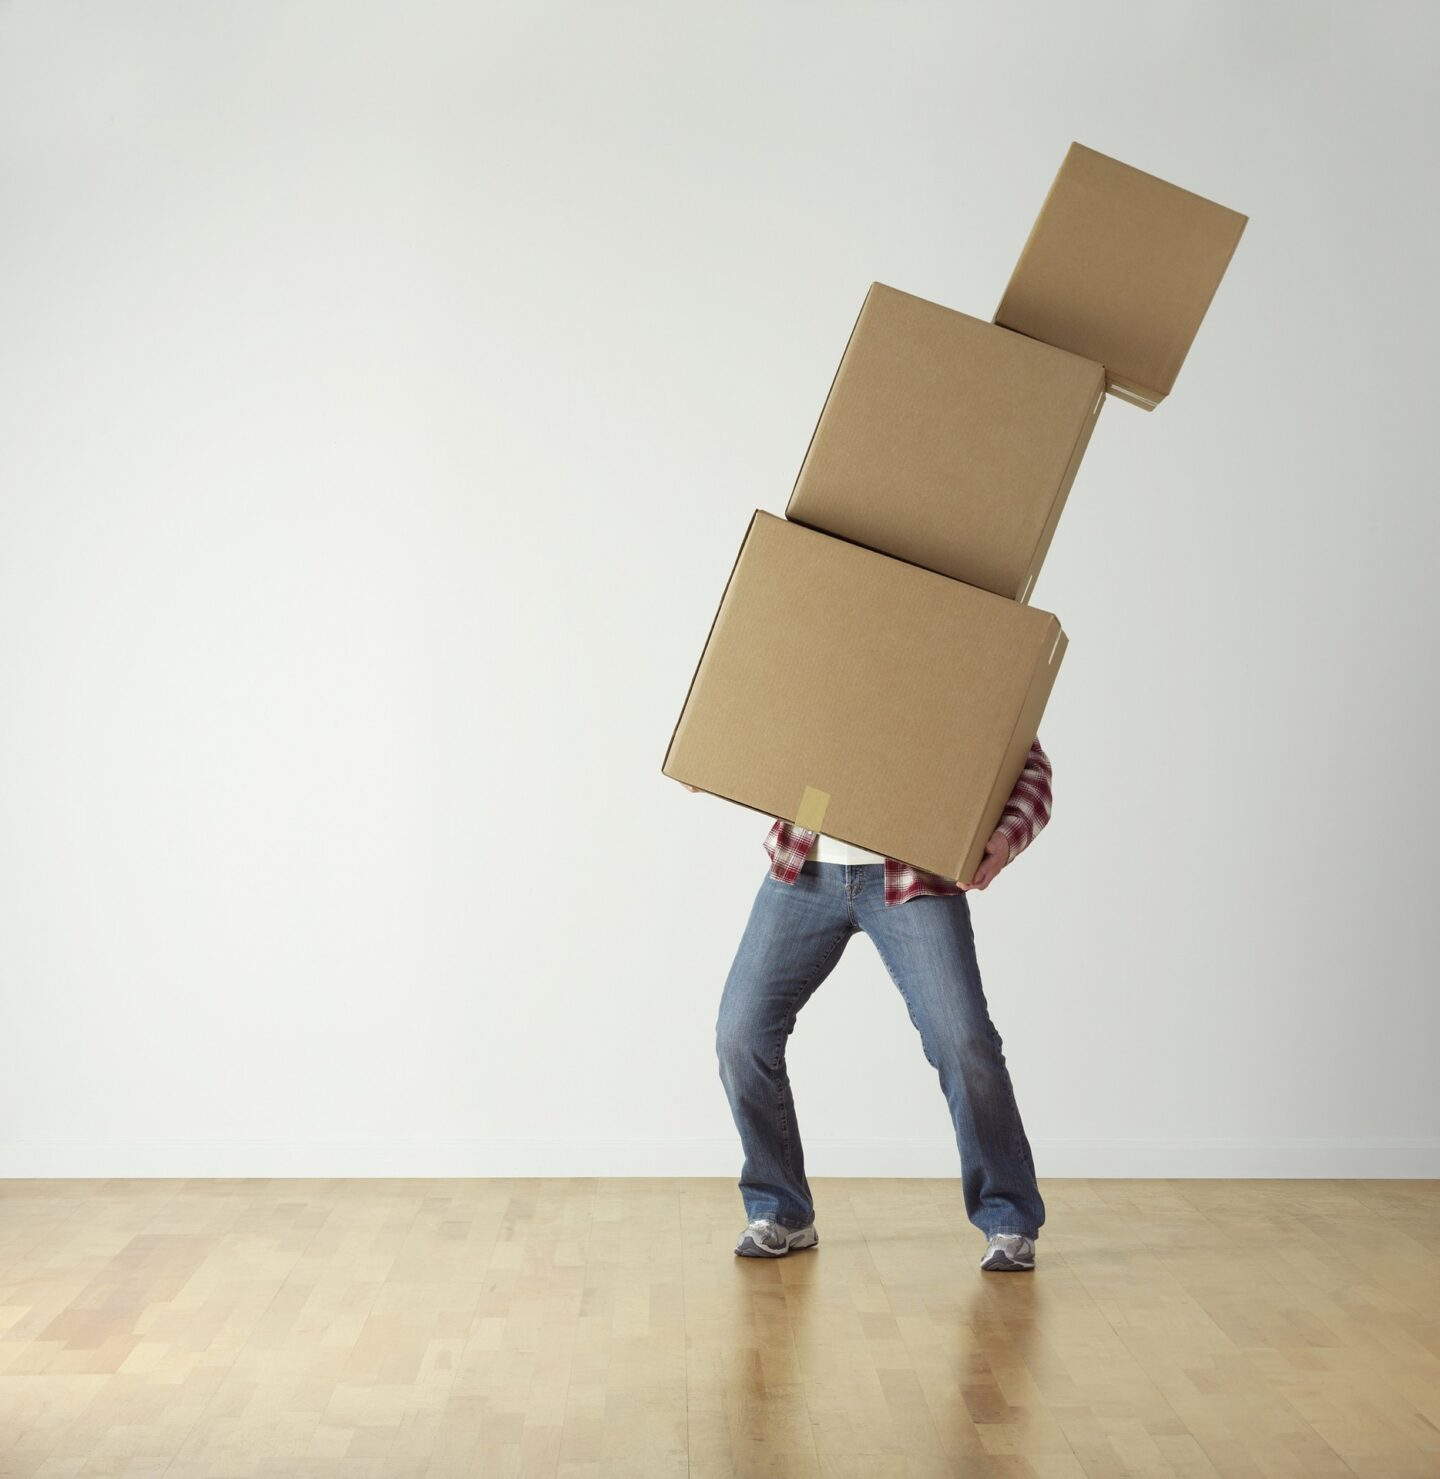 10 Things That Will Make Moving Day Go Faster